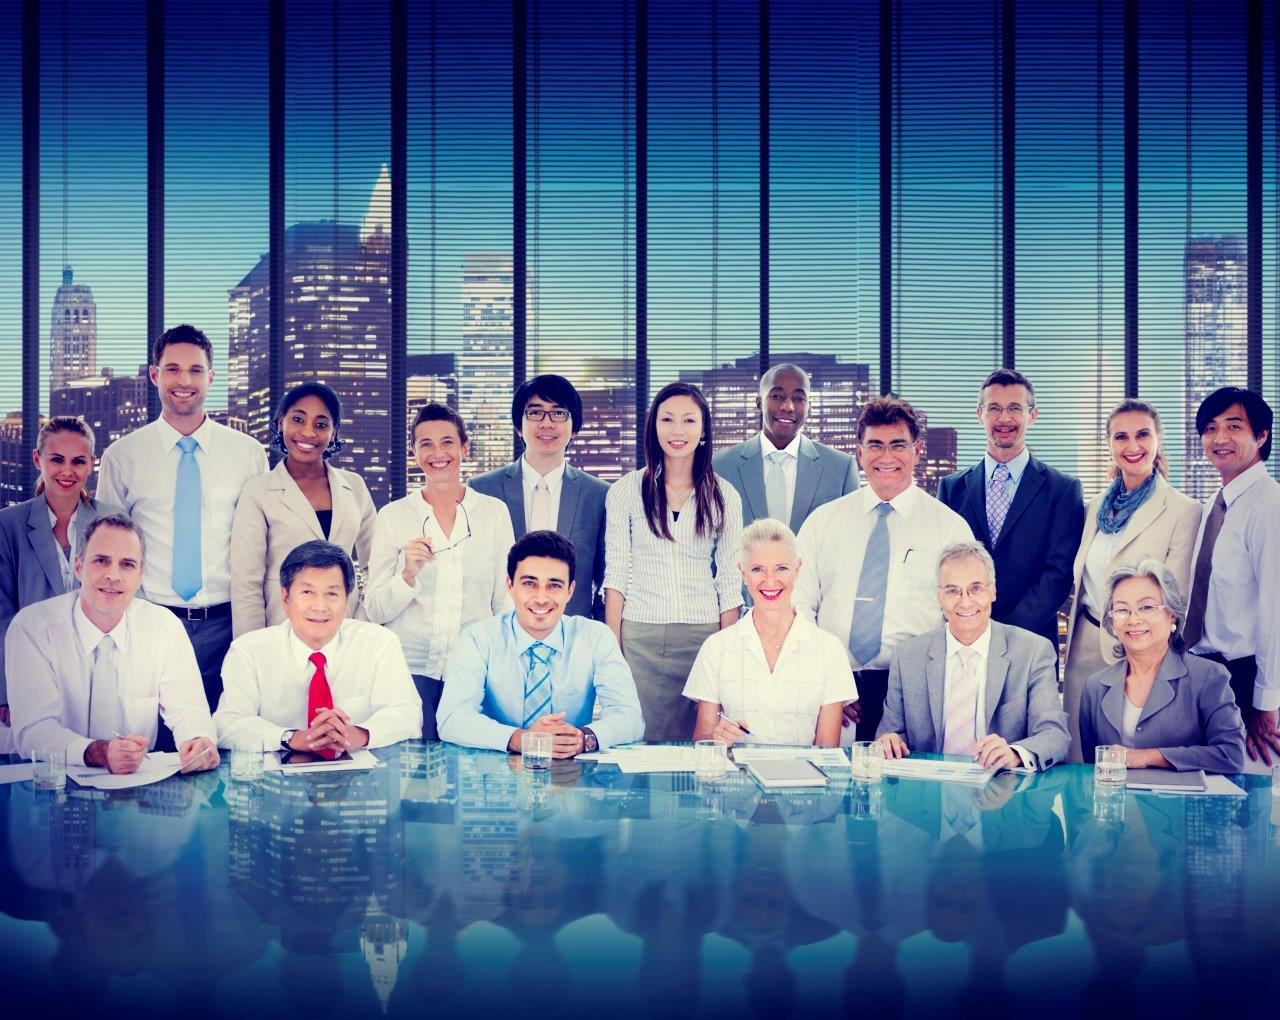 Group of professionals with city skyline